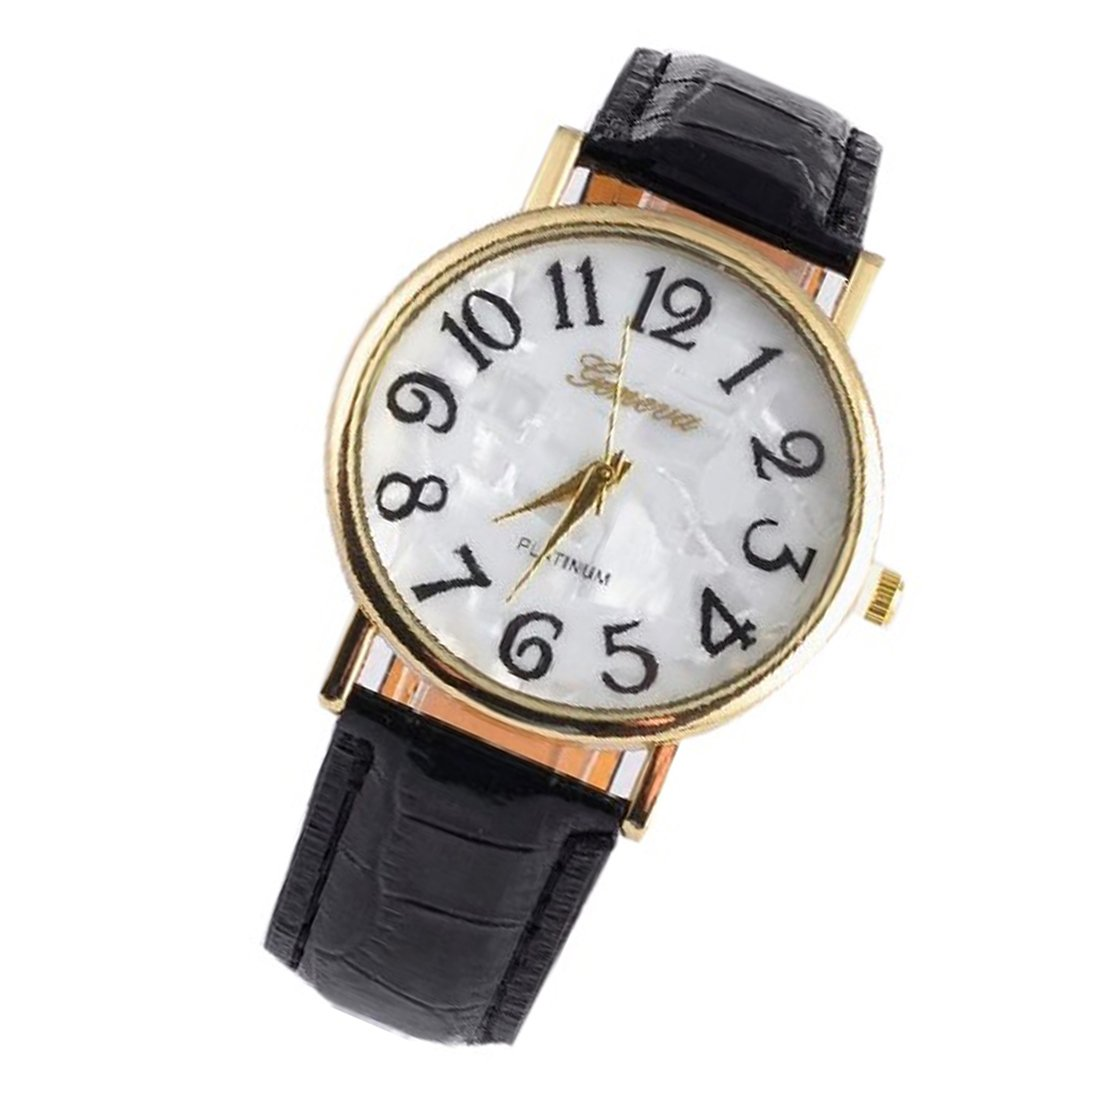 Amazon.com: joyliveCY Casual Watch Unisex Quartz Watches Big Number Analog Wristwatches Black: Watches